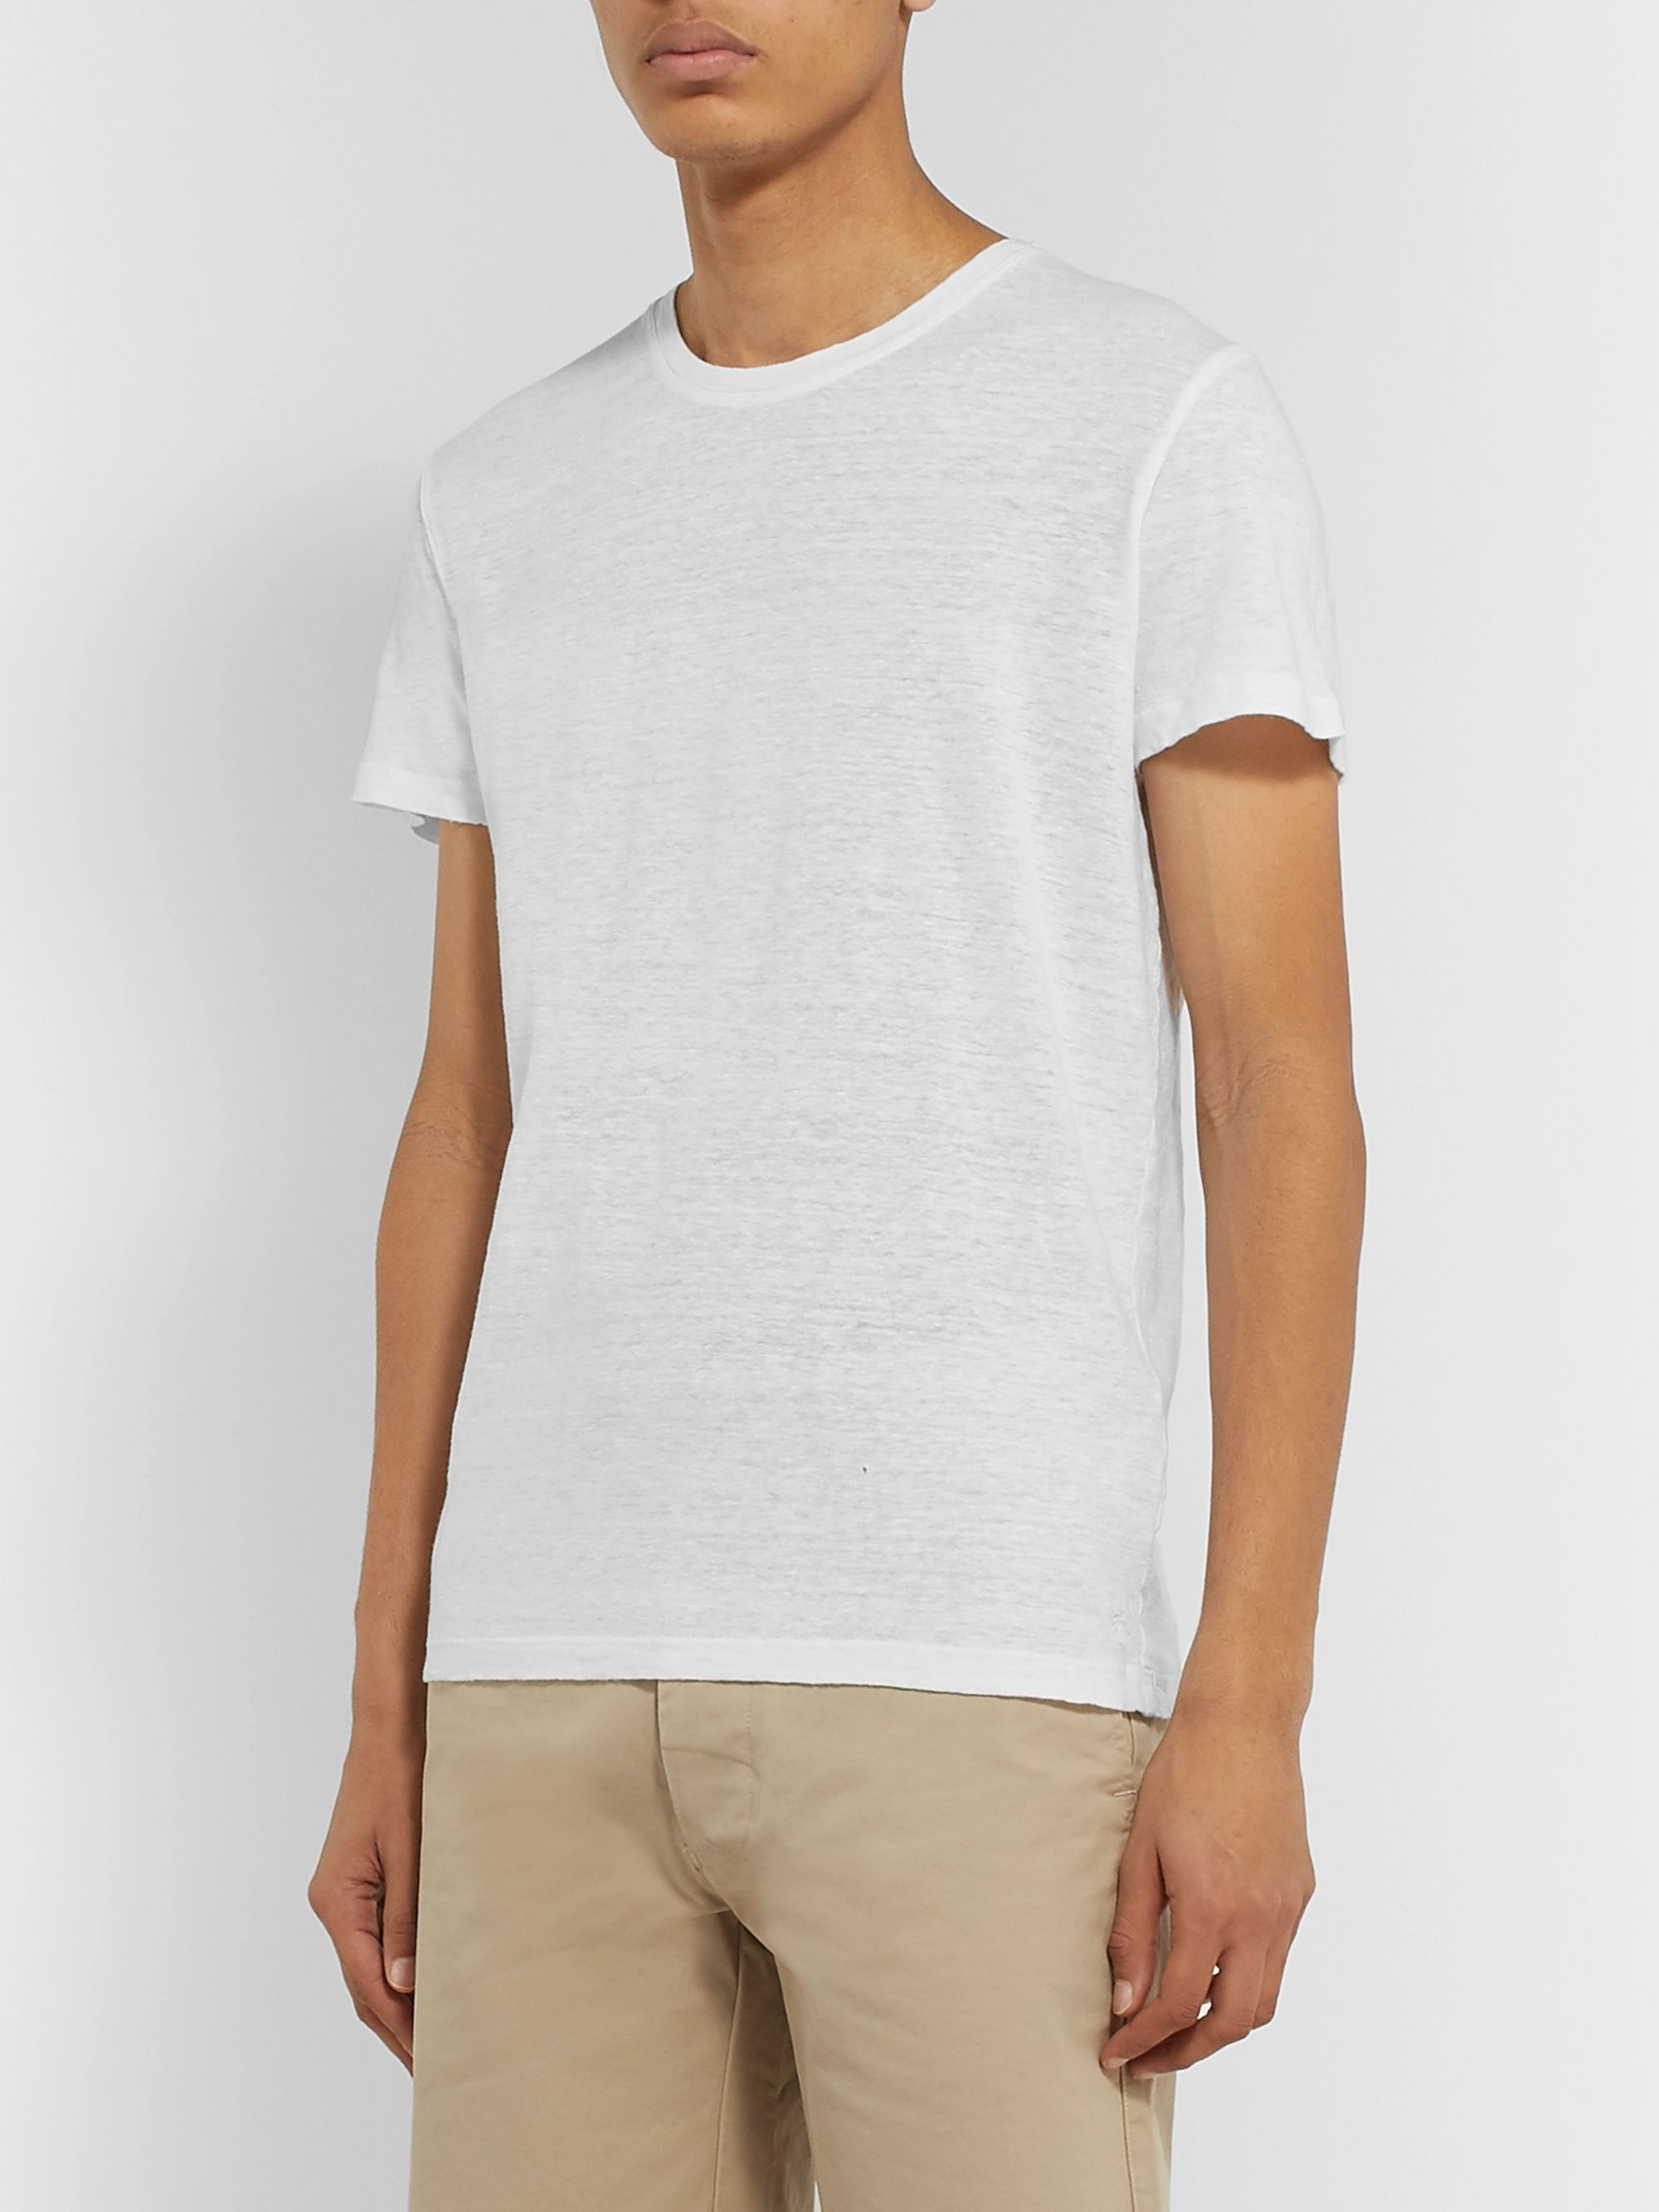 120% Slim-Fit Garment-Dyed Linen T-Shirt